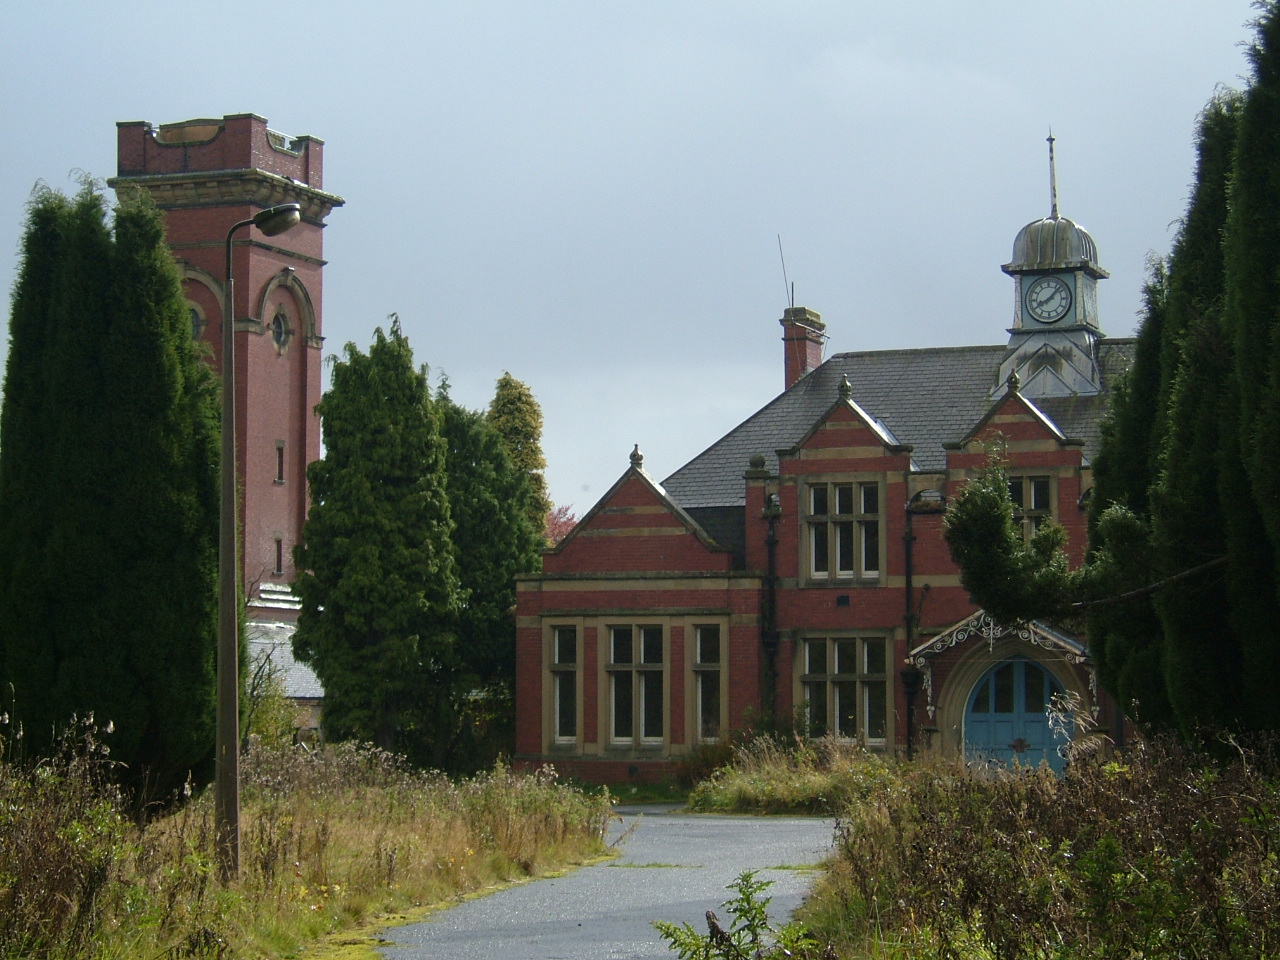 St Mary's Hospital, Stannington